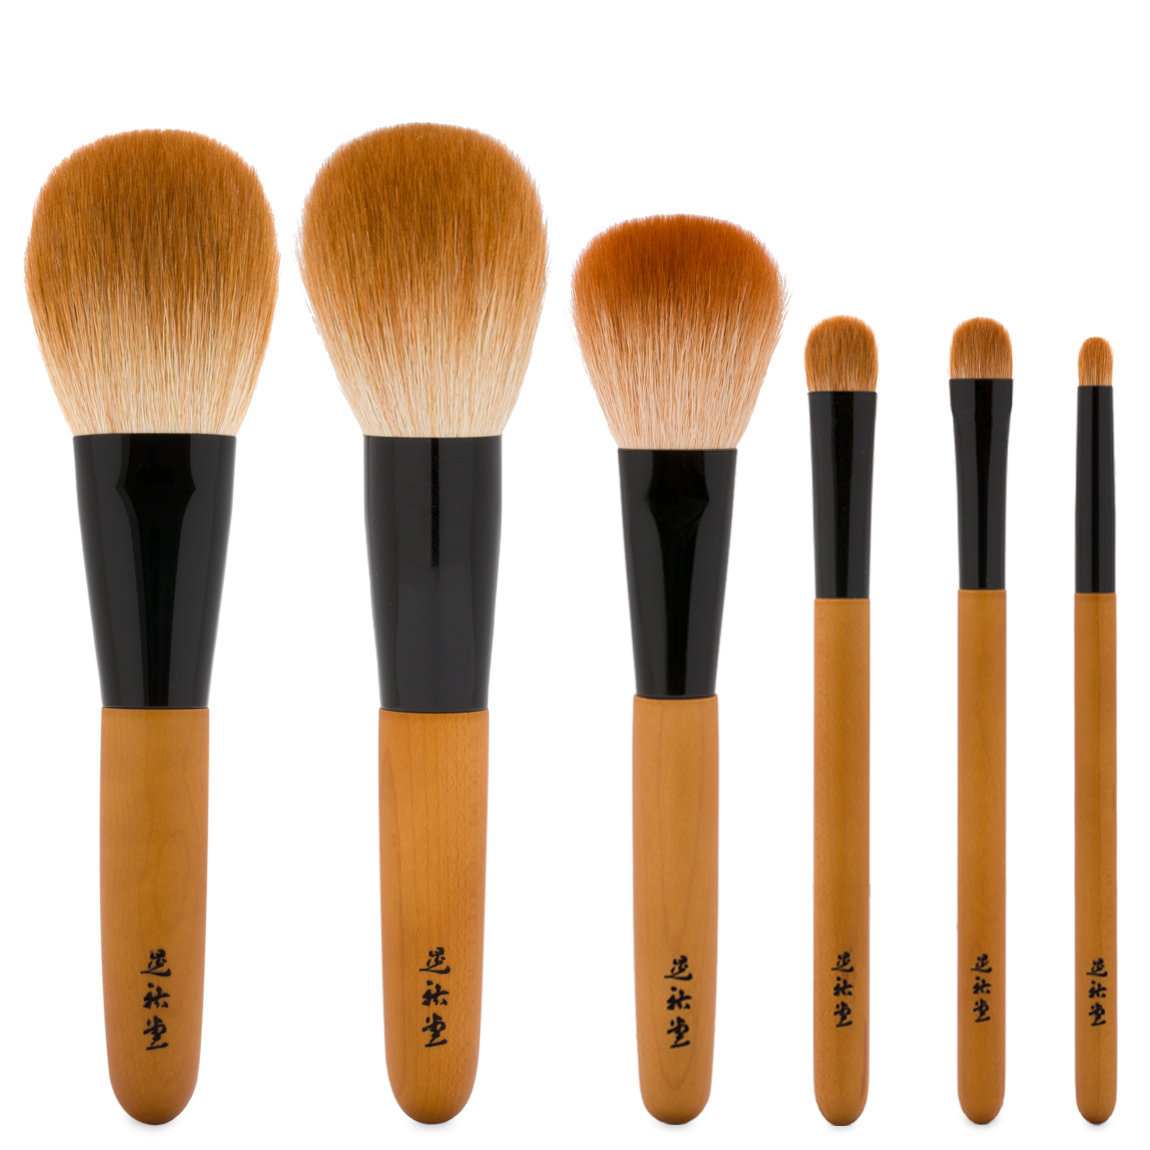 KOYUDO Kakishibuzome Series Brush Set alternative view 1 - product swatch.